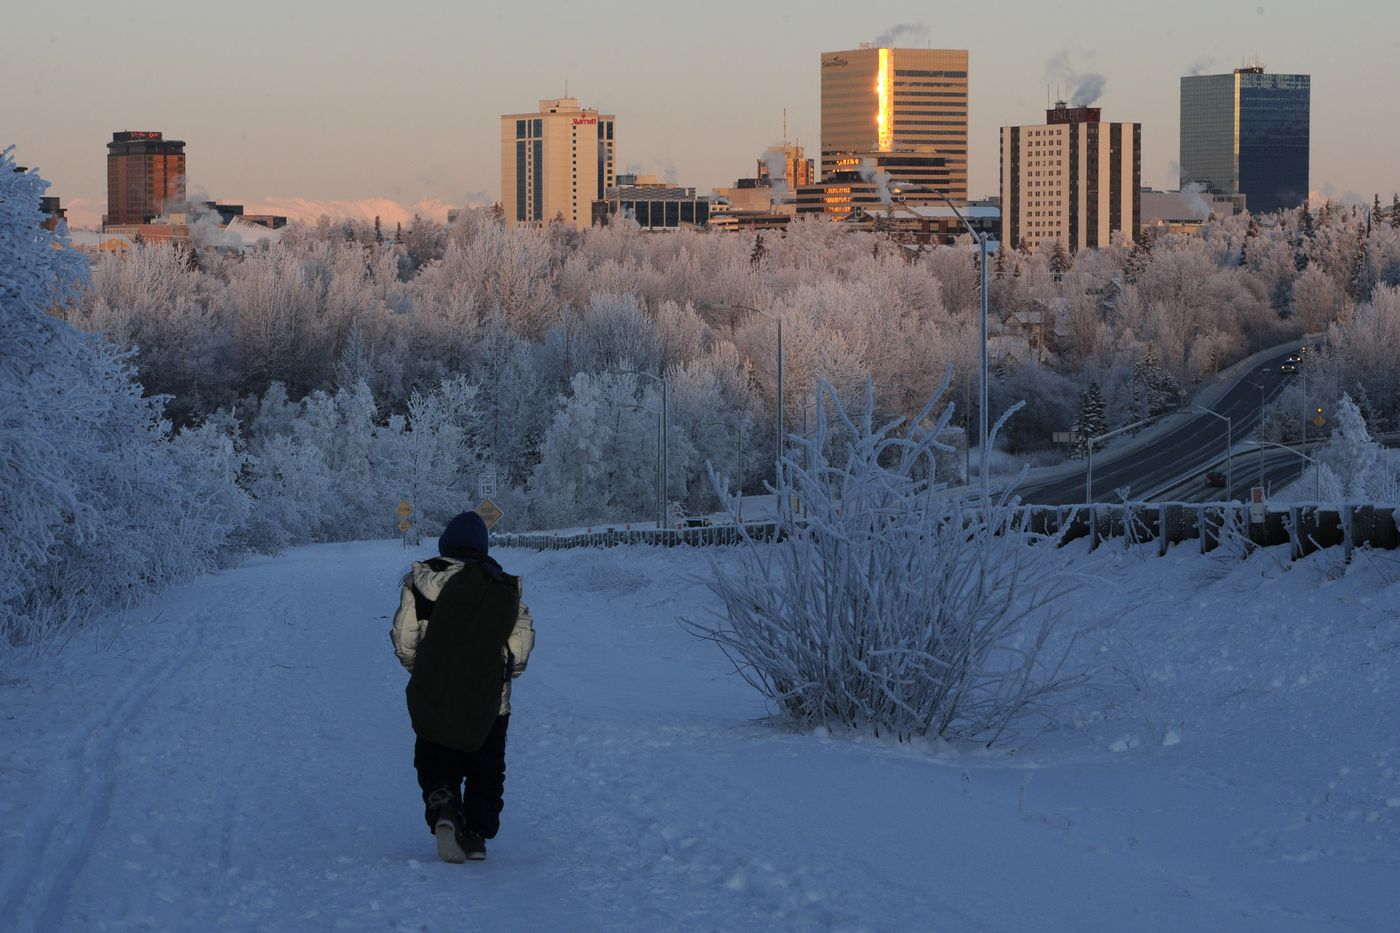 The setting sun casts a warm glow on the Anchorage skyline and frosty trees in the foreground during subzero temperatures on Sunday, Jan. 5, 2020. Shelters for the homeless were at capacity during the cold snap. (Bill Roth / ADN)